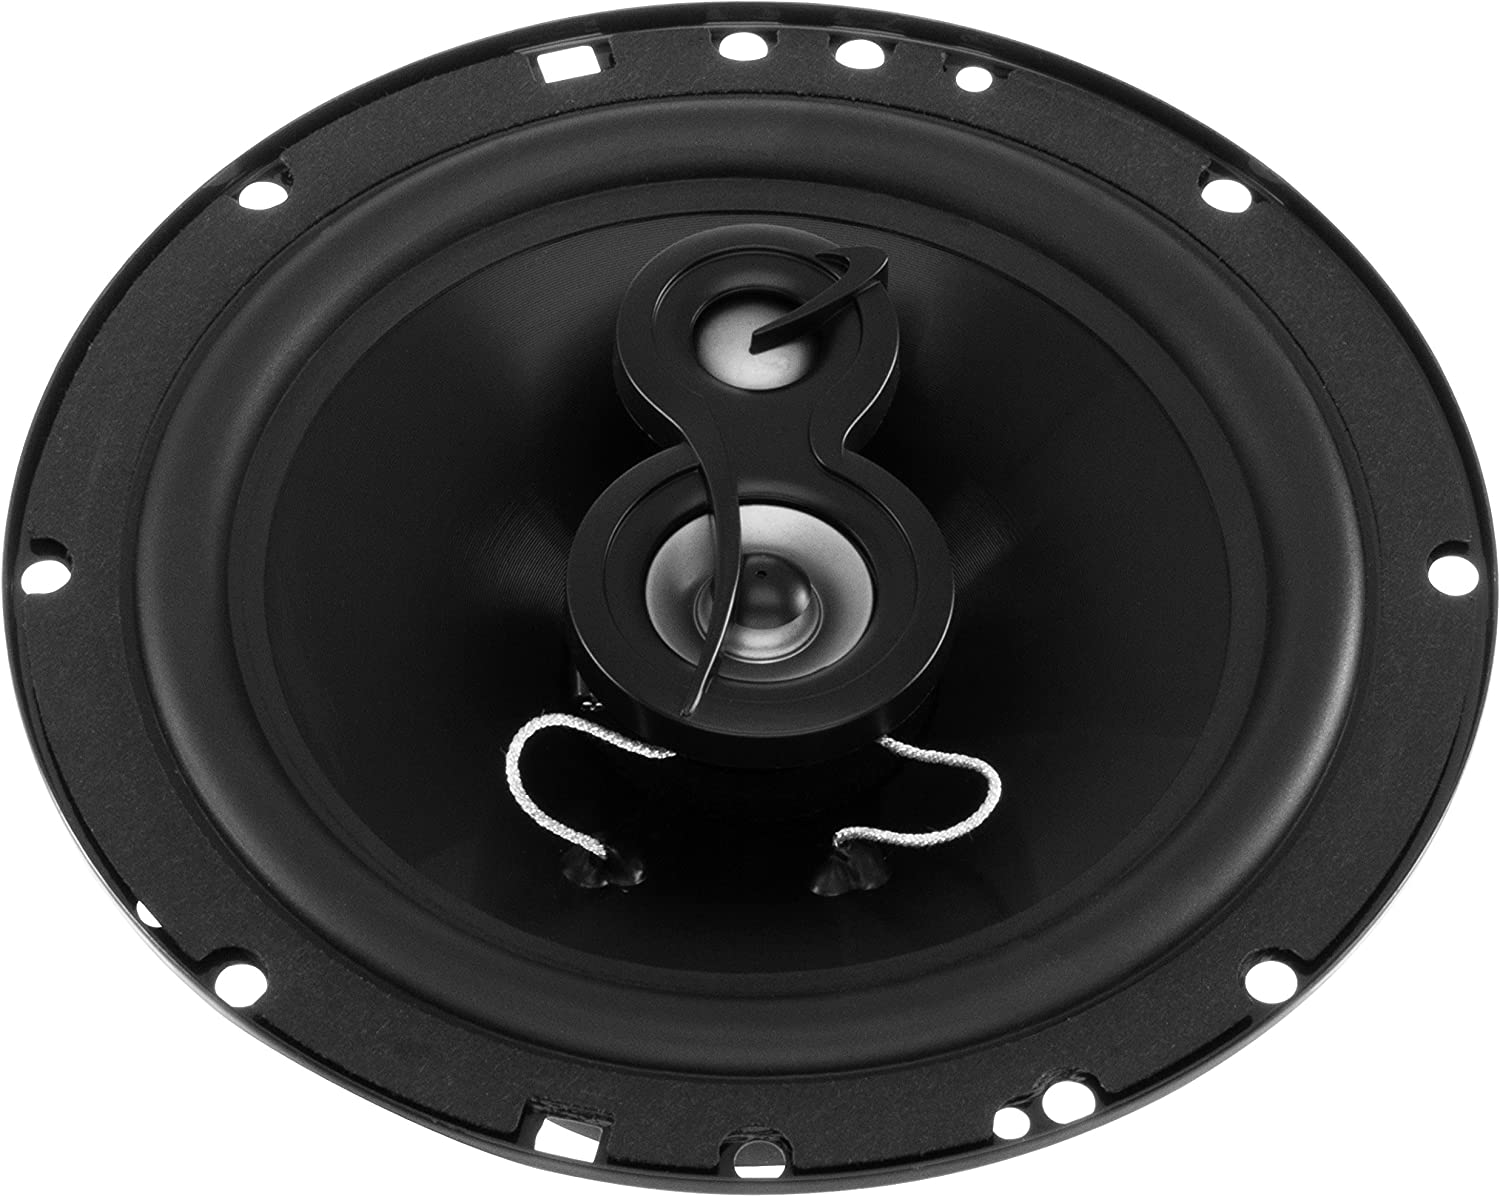 Planet Audio TRQ462 Torque 4 x 6 2-Way 200-watt Full Range Speakers